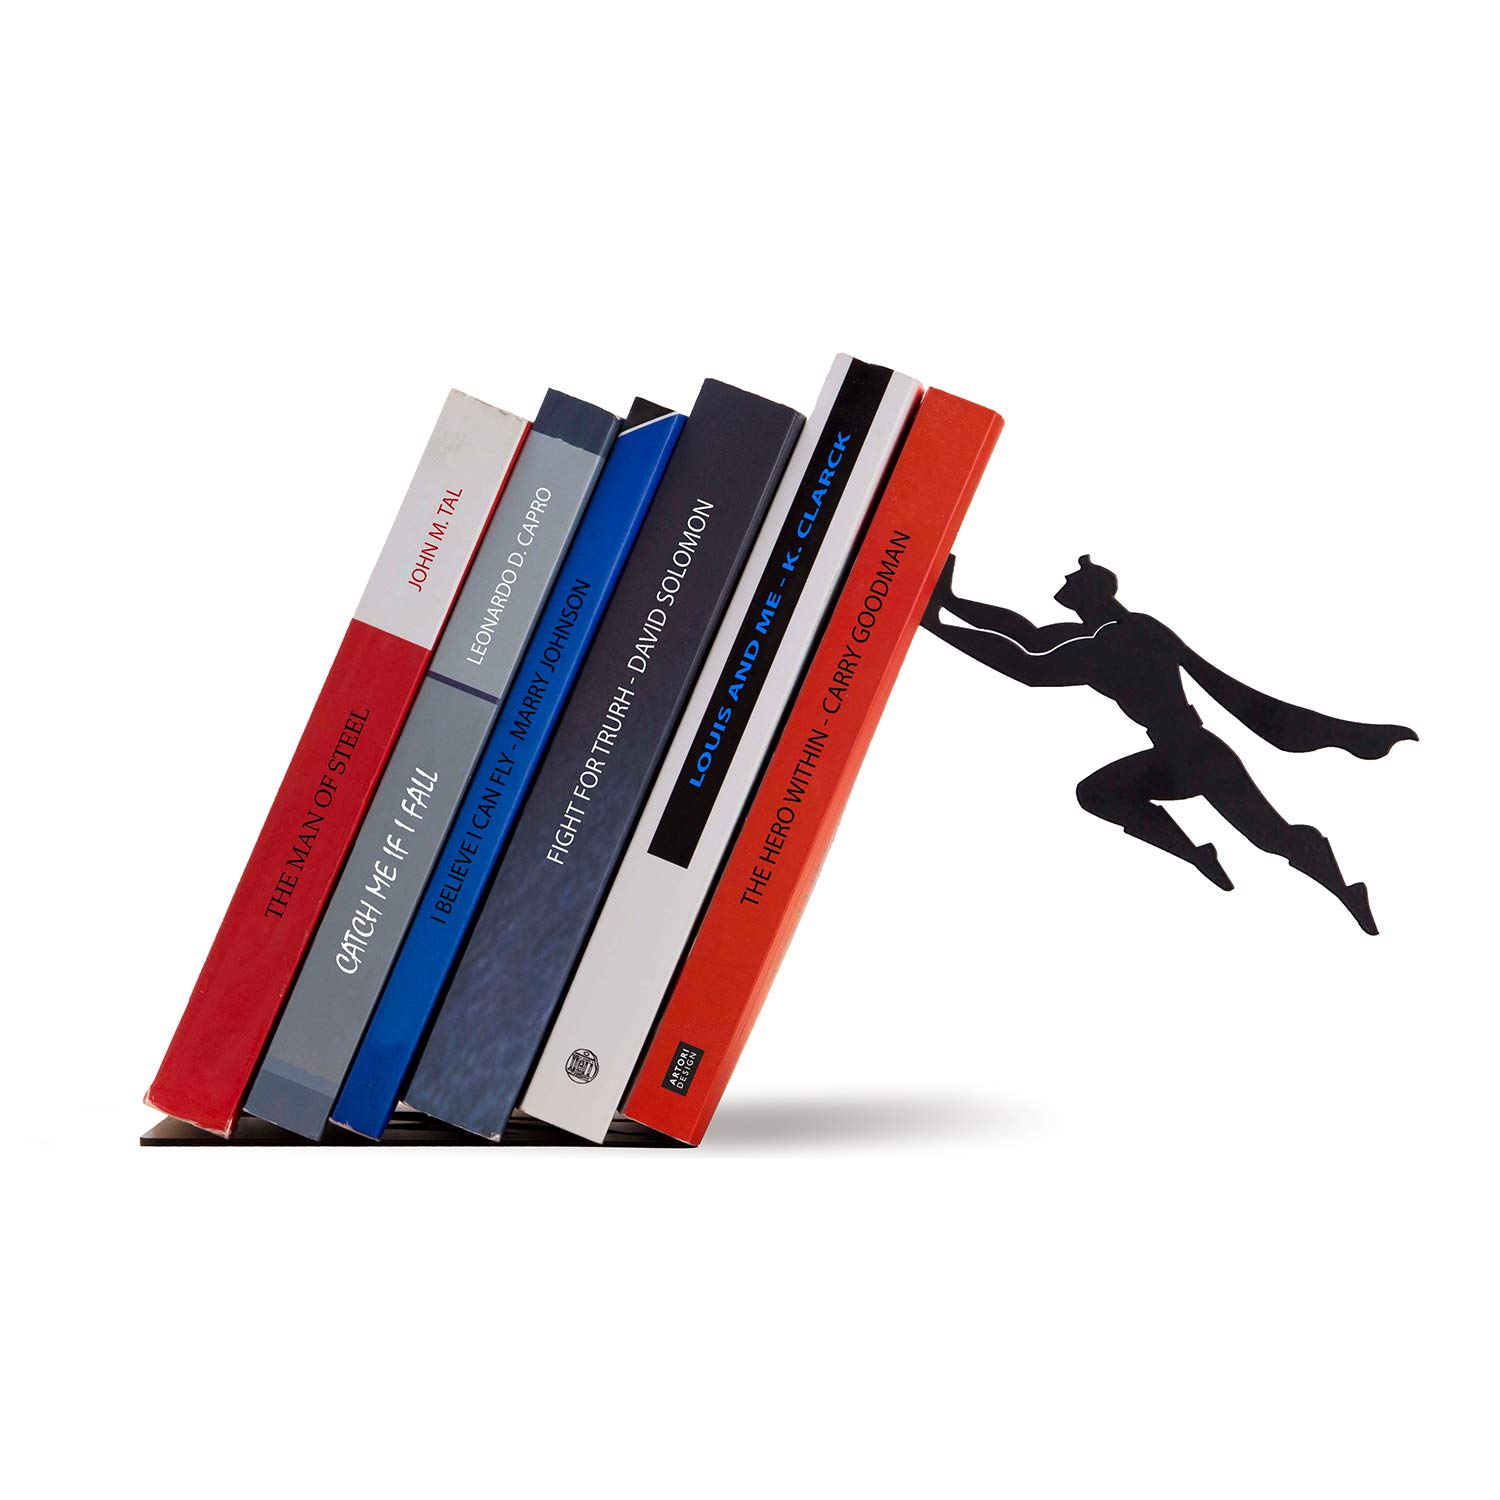 Artori Design Book Ends | Black Metal Superhero Book Ends | Unique Bookends | Gifts for Geeks | Gifts for Book Lovers | Cool Book Stopper Gift for Dad Book & Hero by Artori Design